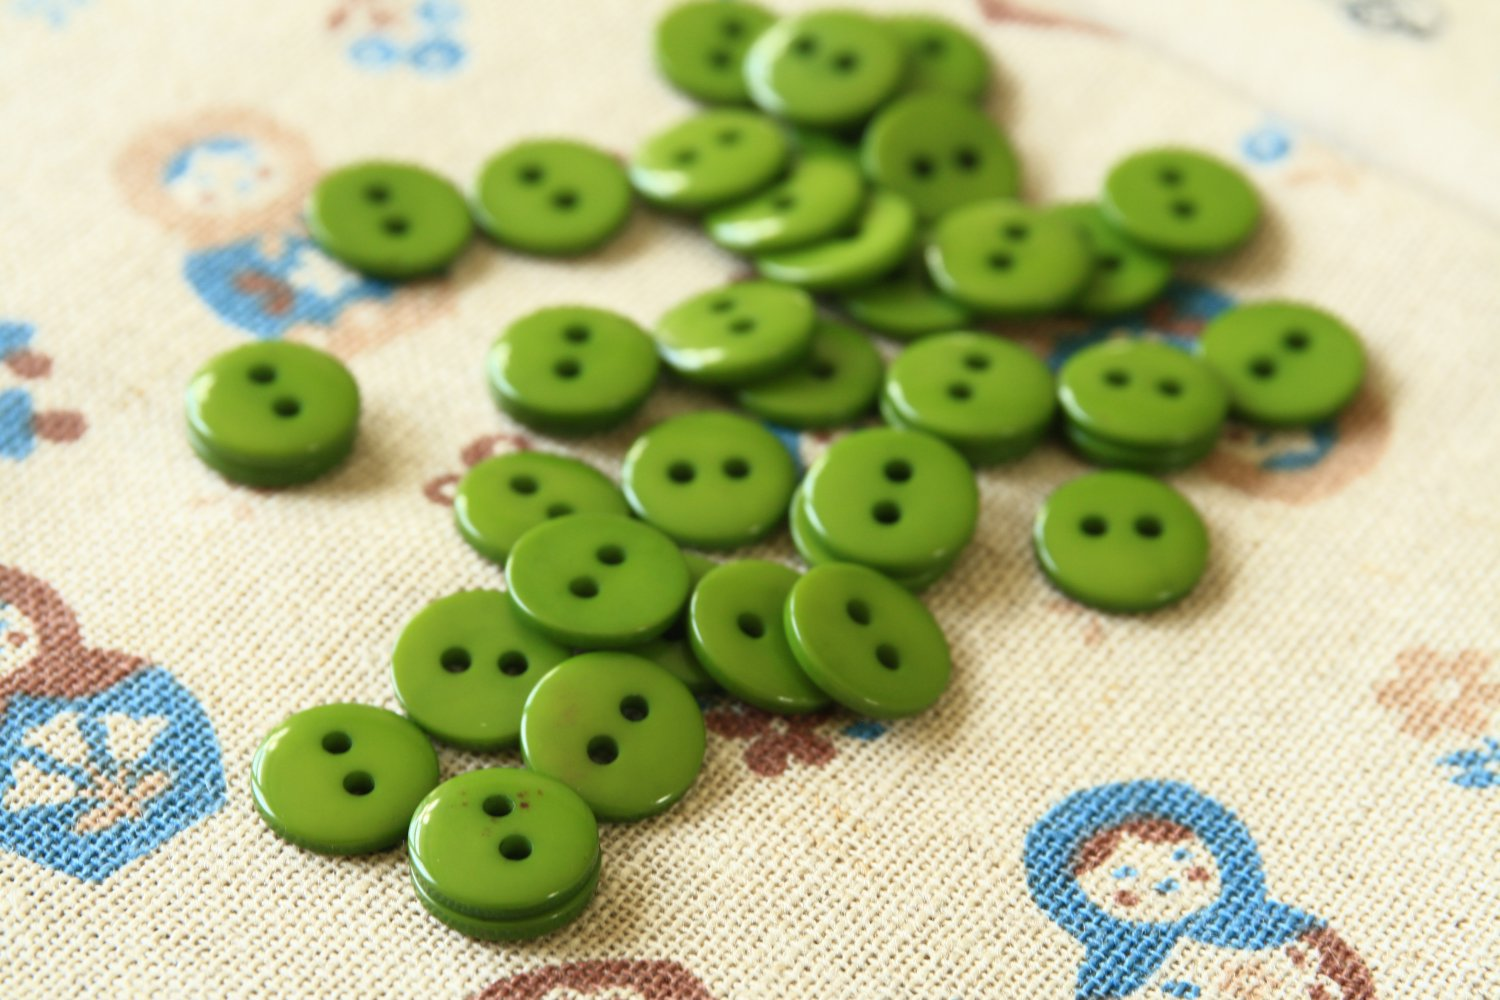 Apple Green Mini Resin Candy Colour Buttons 20pc Set